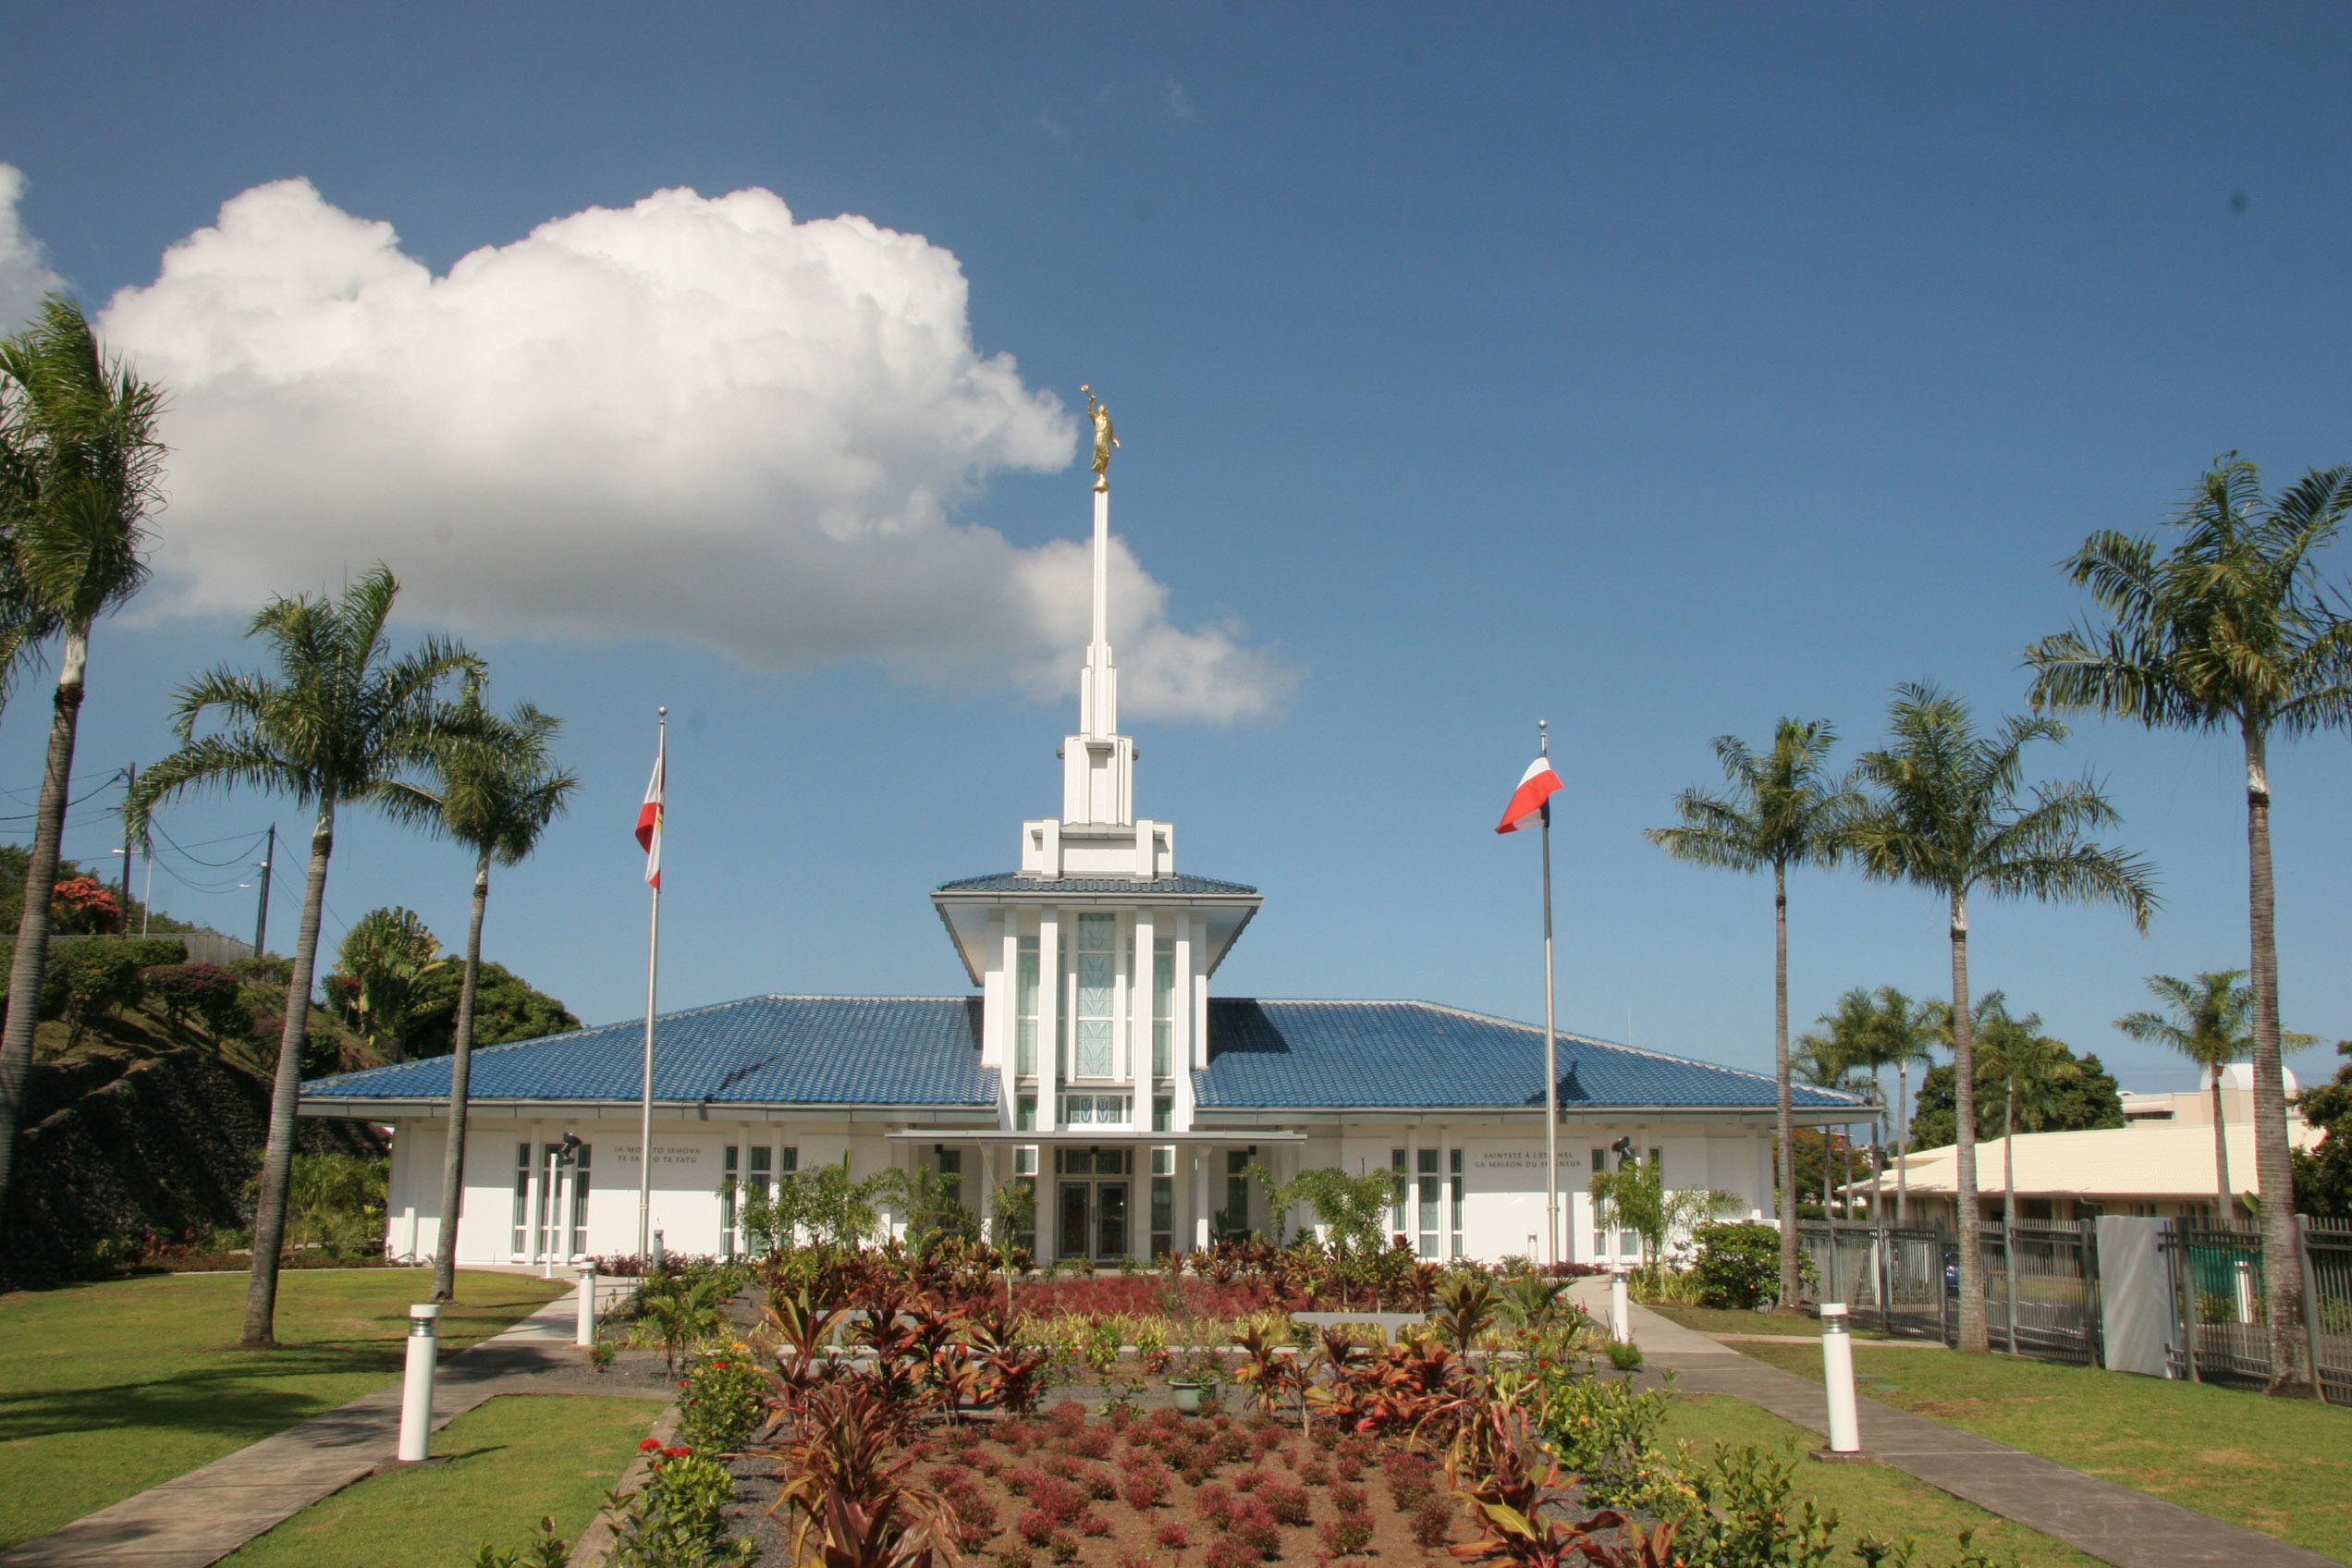 Papeete temple, rededicated Nov. 12